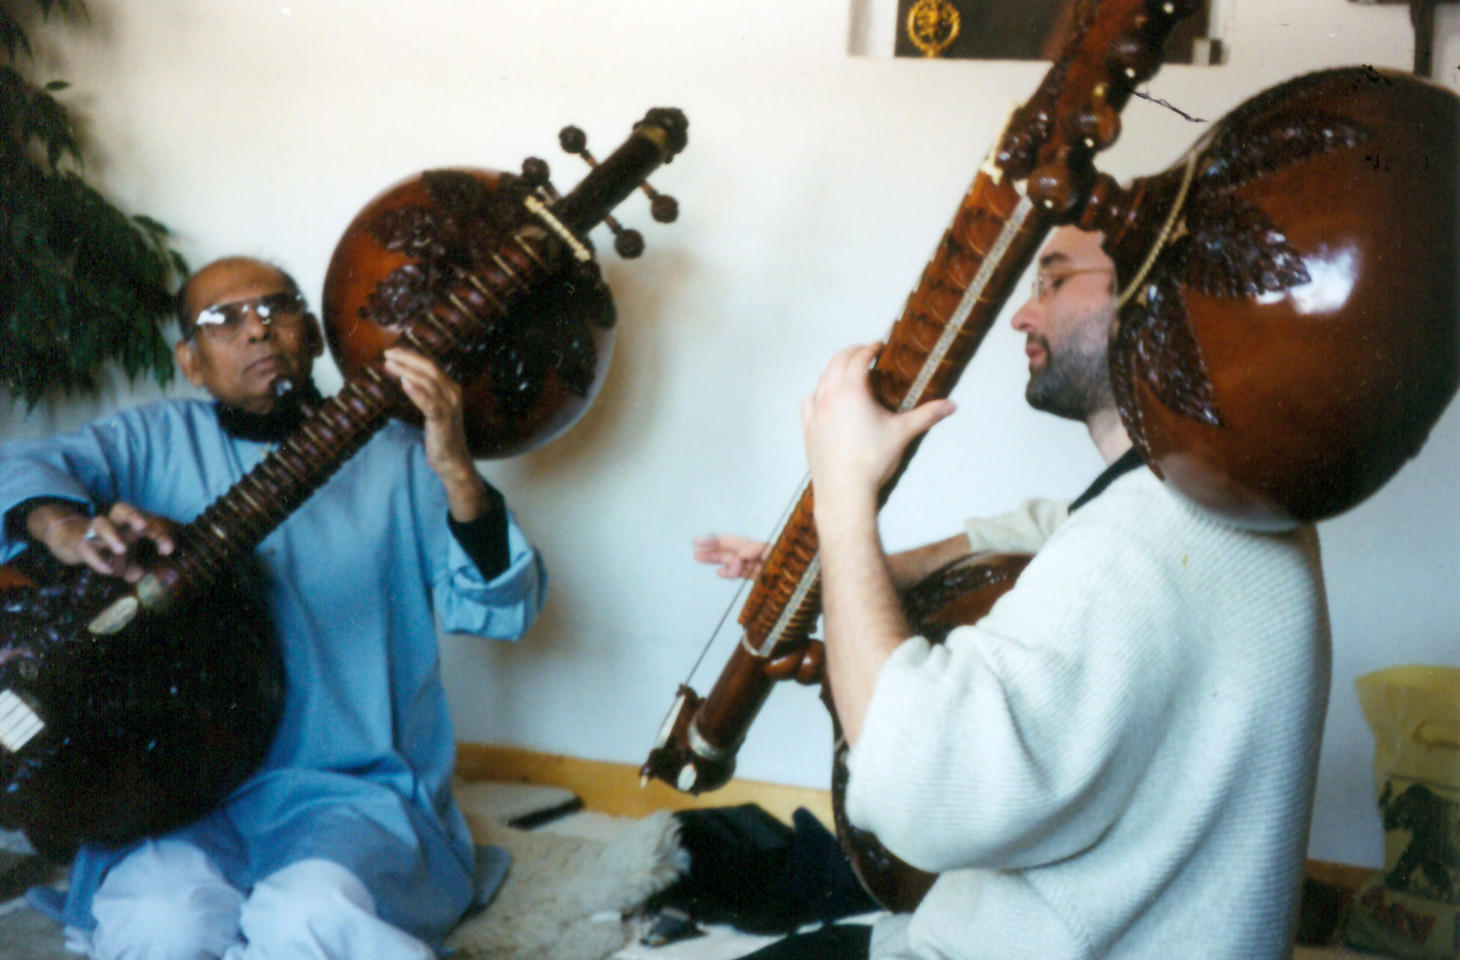 Ustad Asad Ali Khan and Carsten Wicke